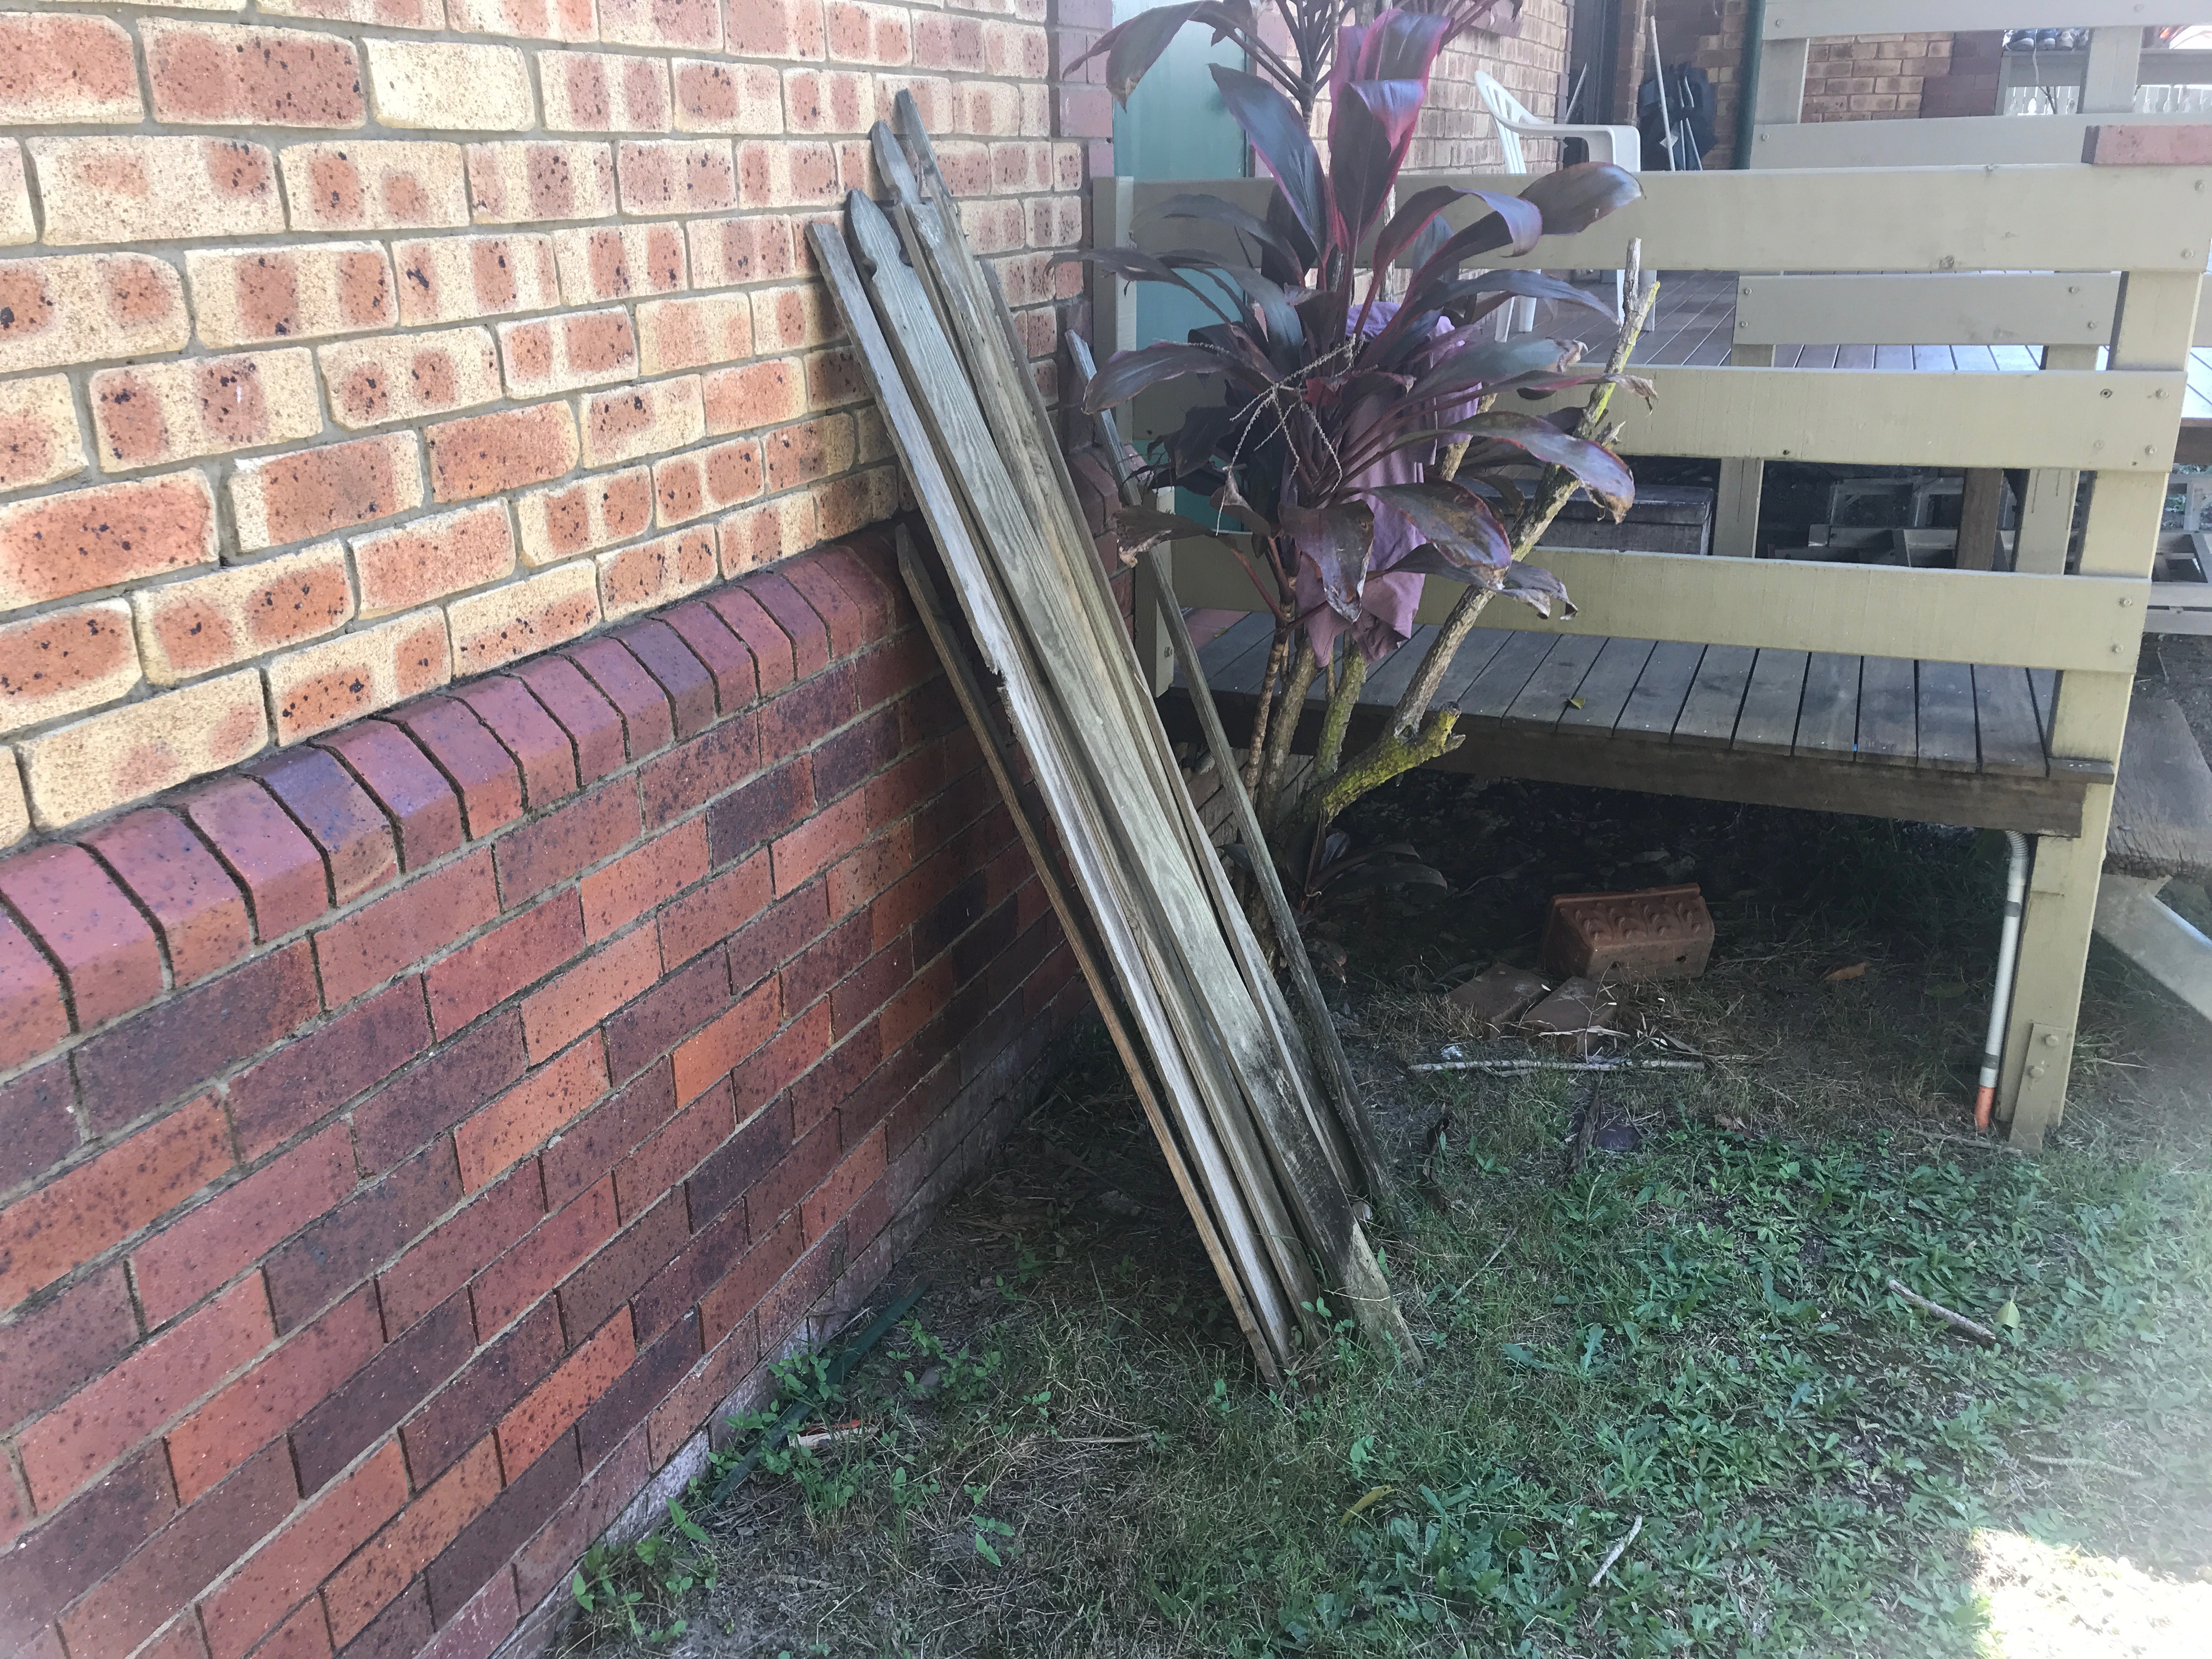 This stored timber could act as a bridge for termites to get access week points in the mortar